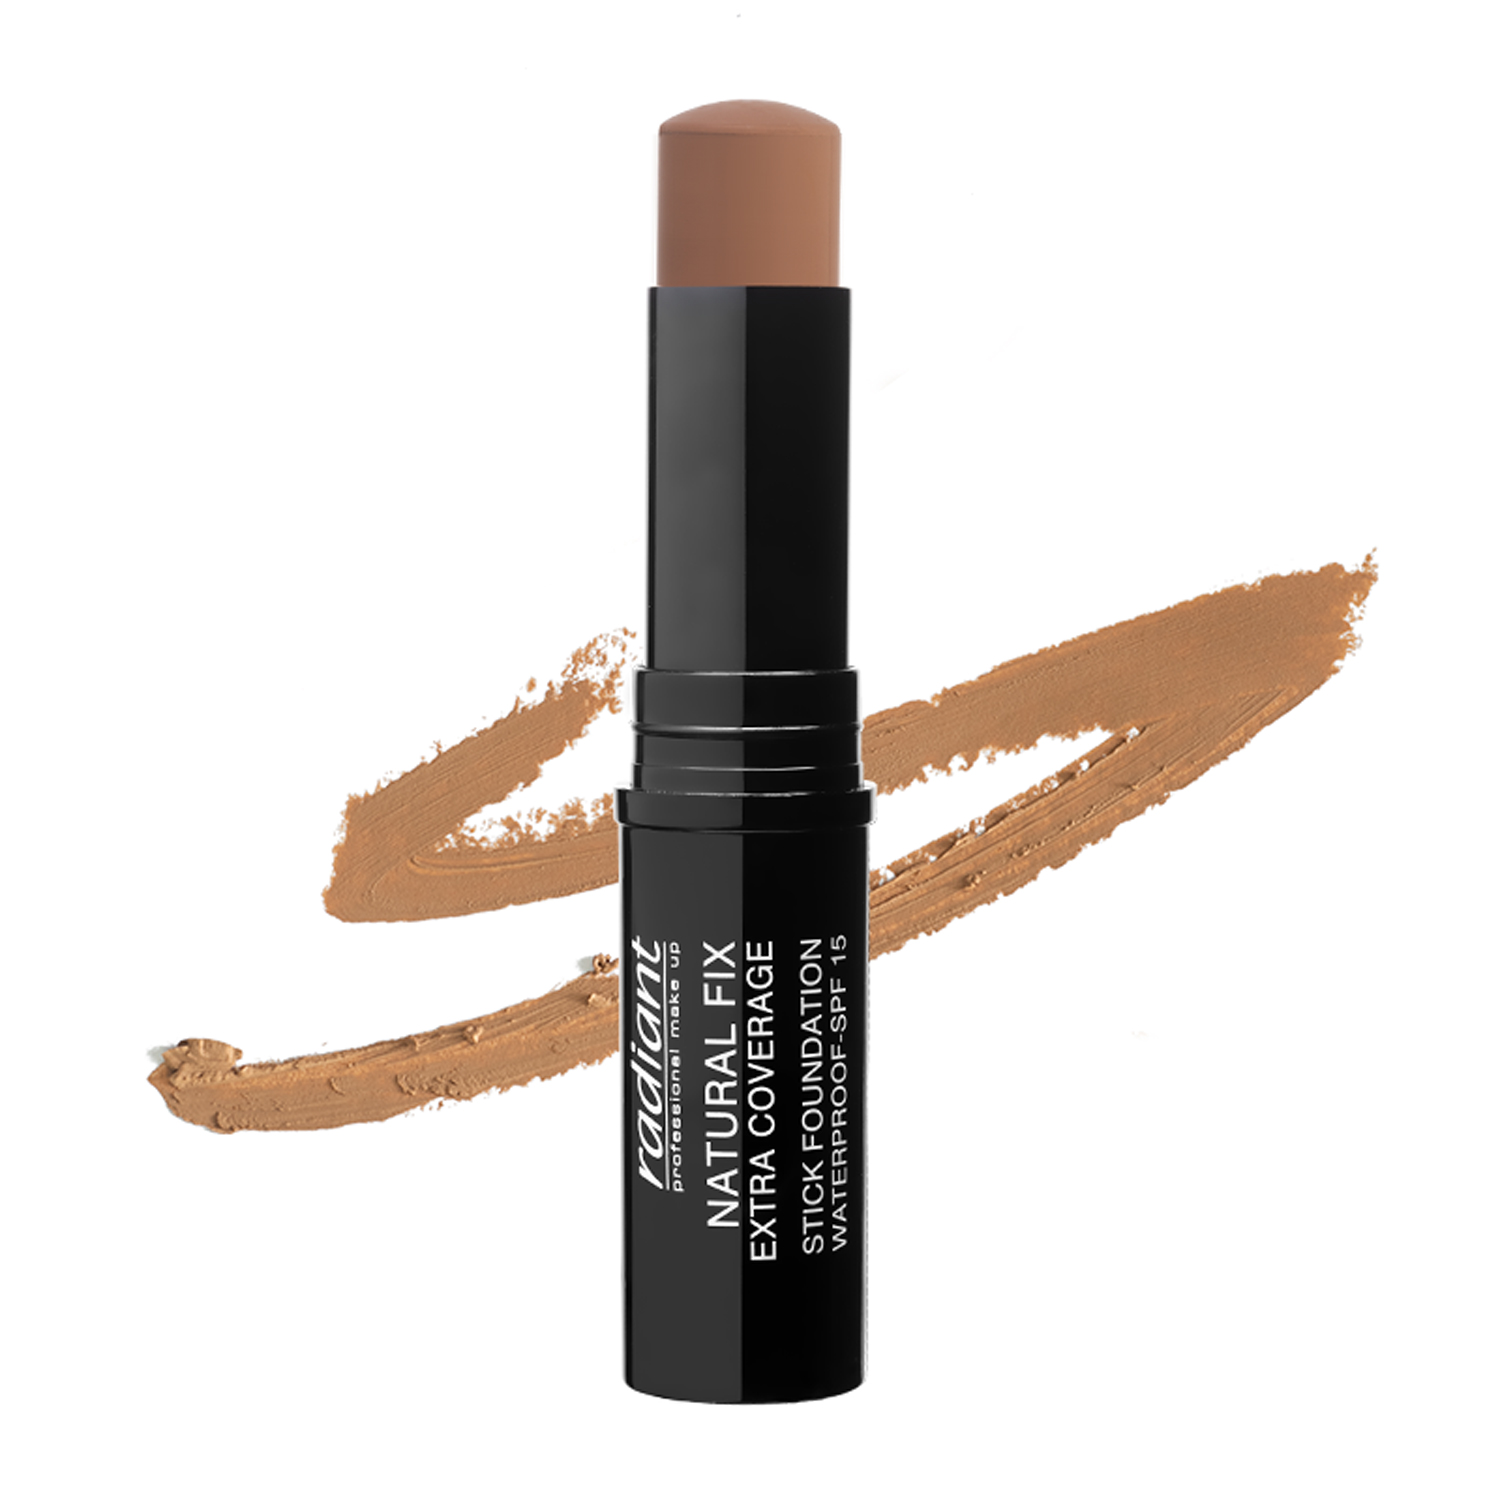 NATURAL FIX EXTRA COVERAGE STICK FOUNDATION  WATERPROOF SPF 15 (06 TAWNY)